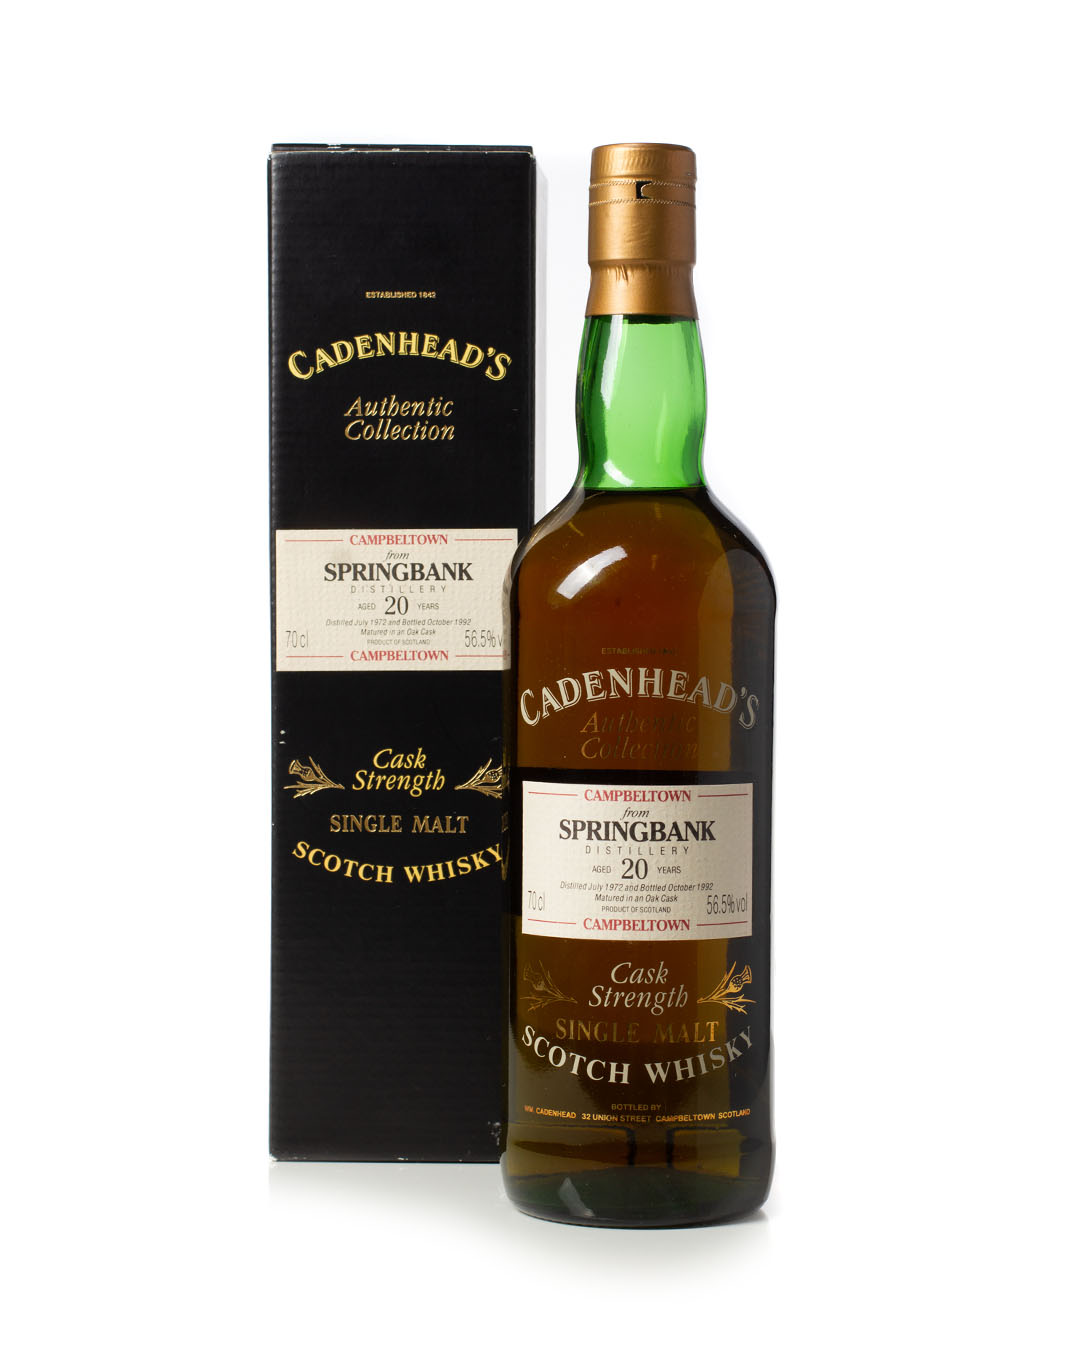 Springbank 1972 20 year old Cadenhead's Authentic Collection with box for sale